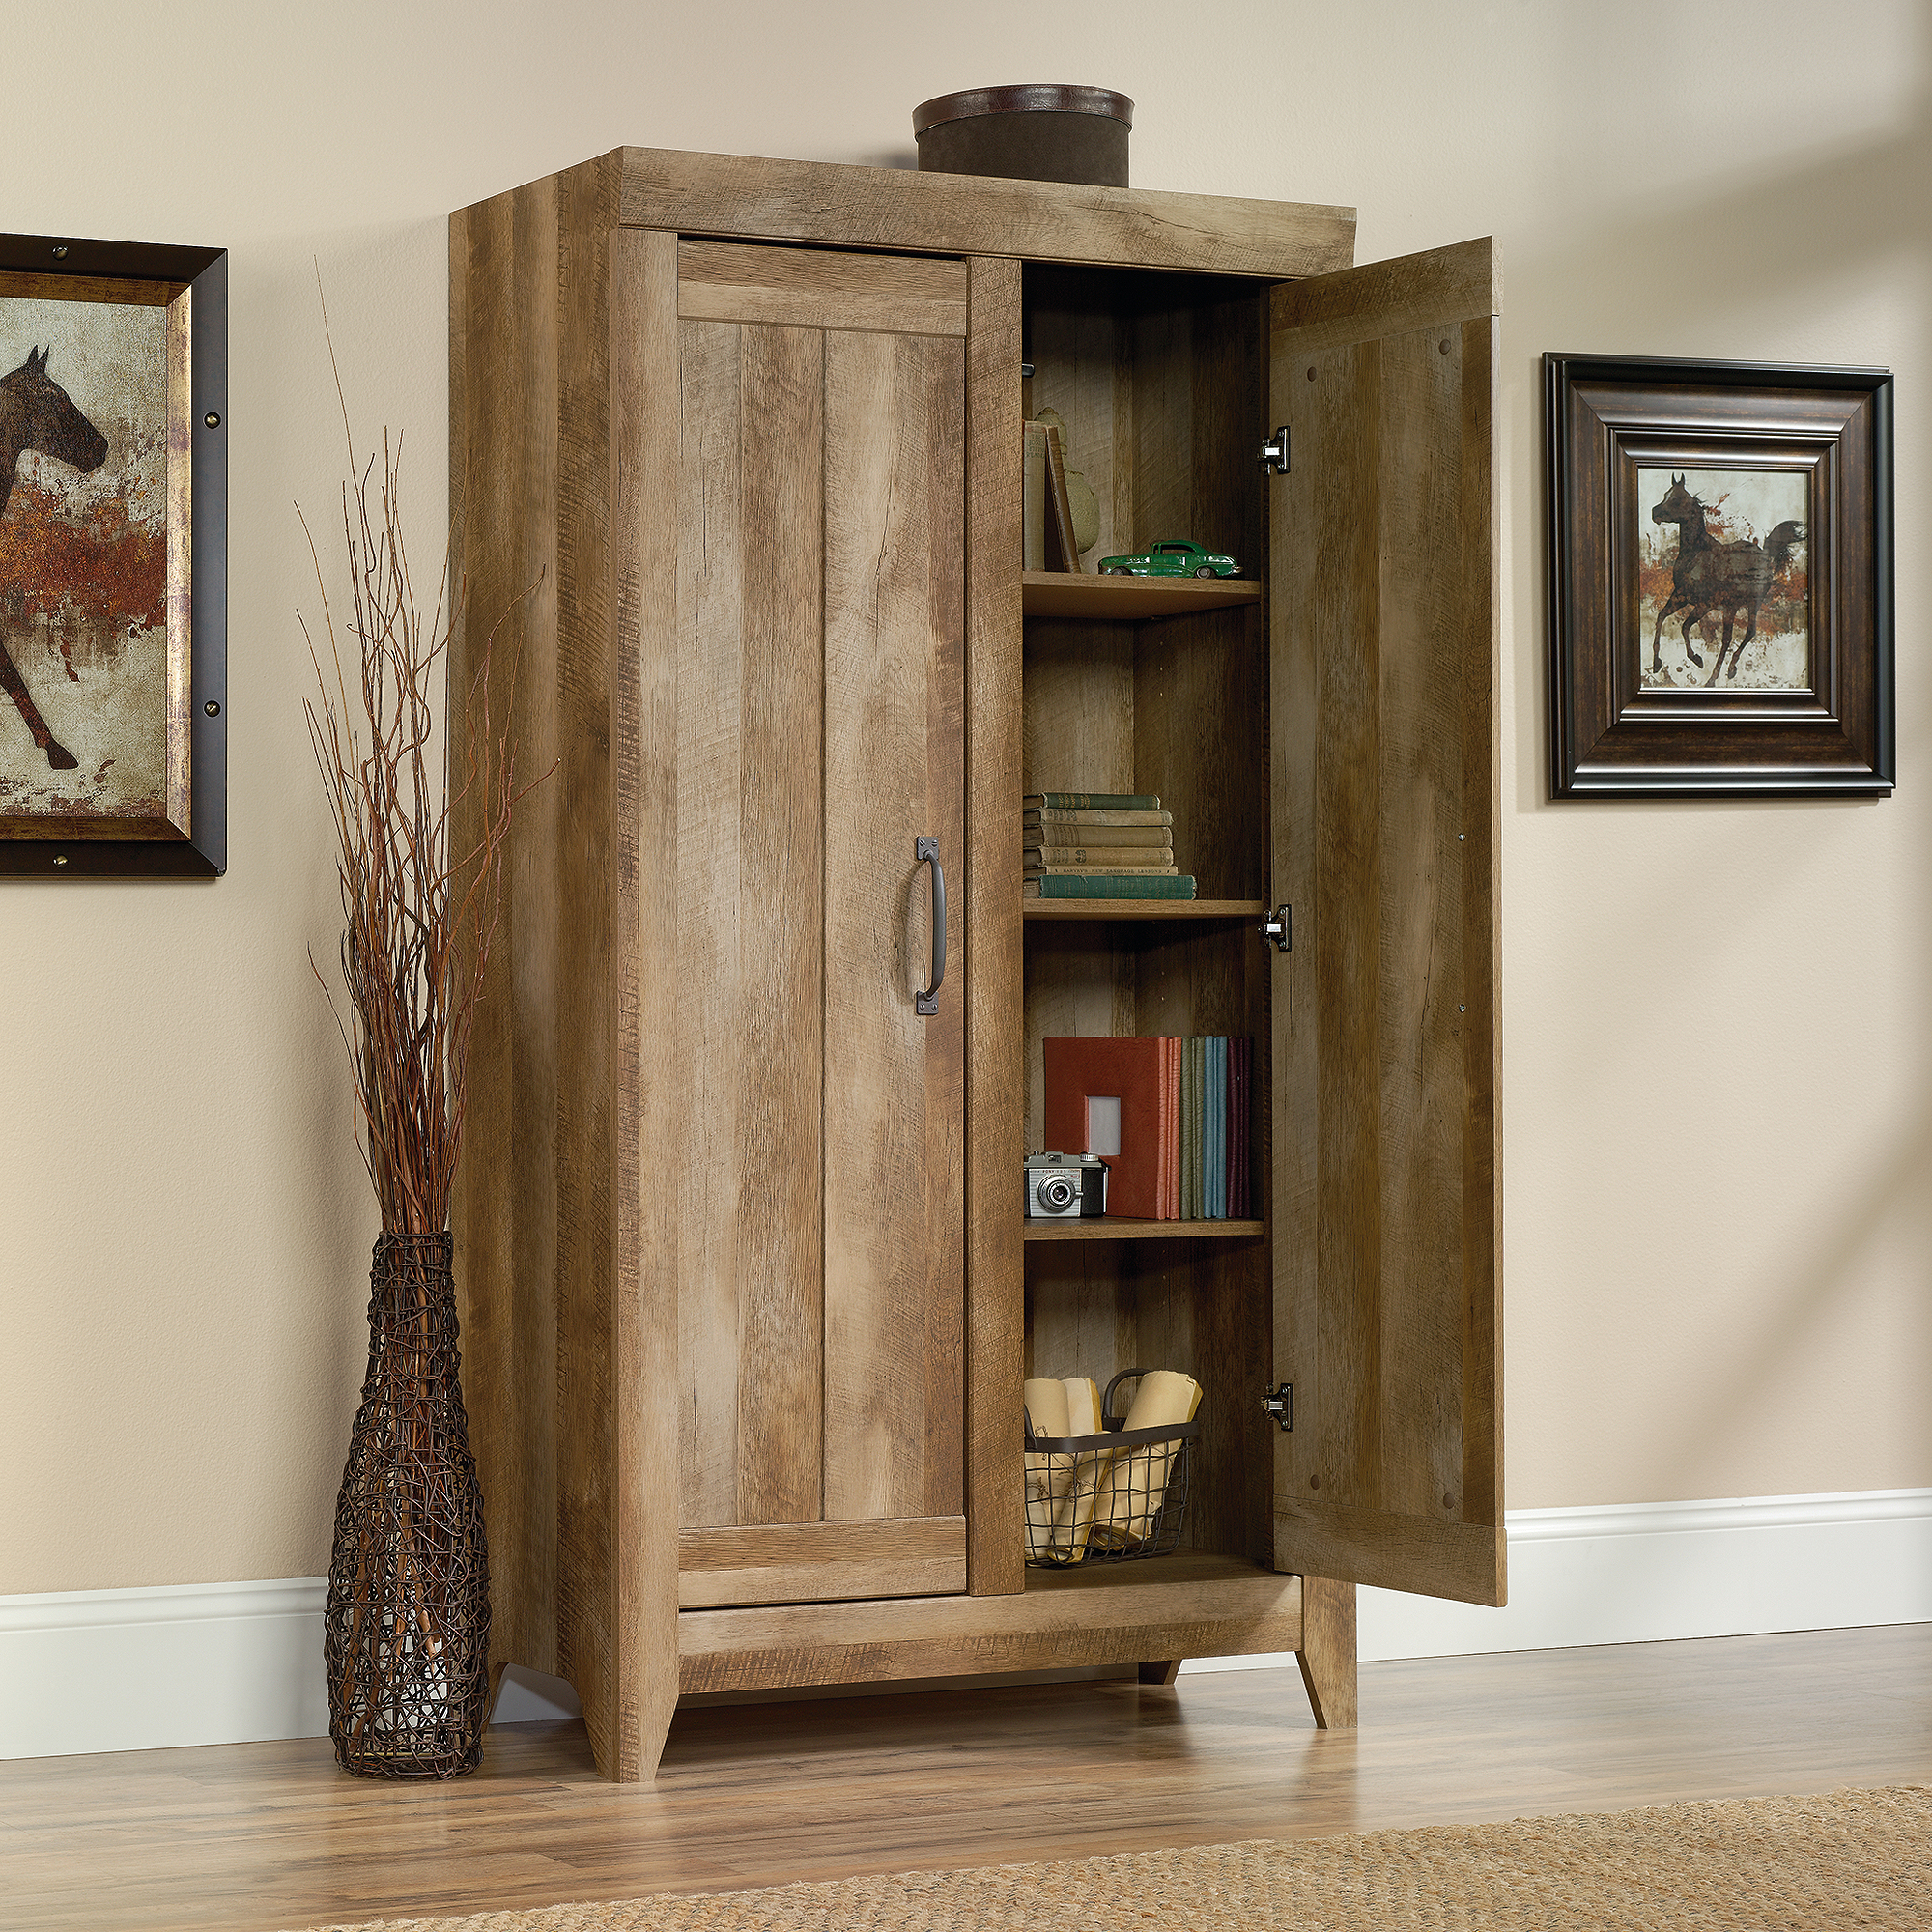 Sauder Adept Storage Furniture Collection - Walmart.com